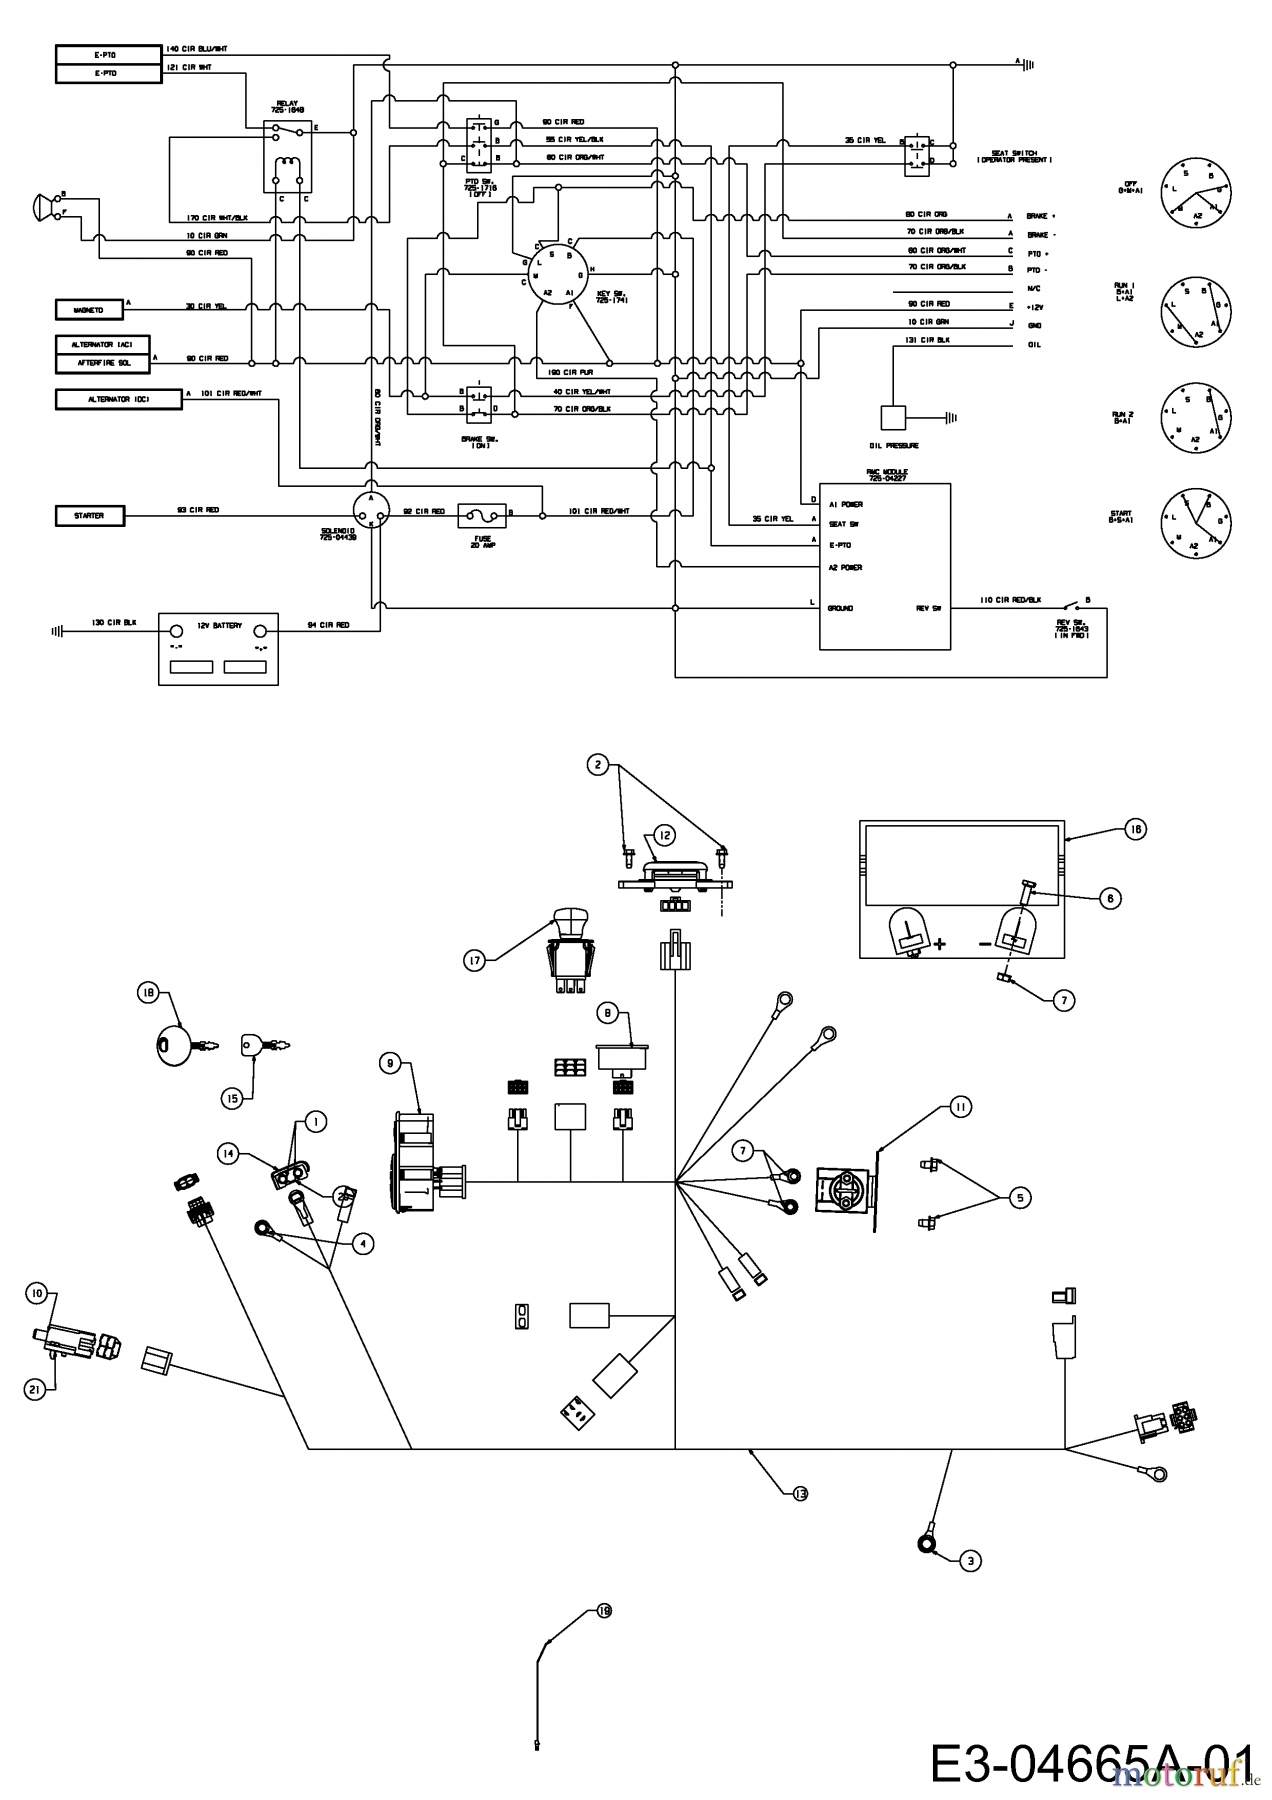 [DIAGRAM] Farmall Cub Diagram FULL Version HD Quality Cub